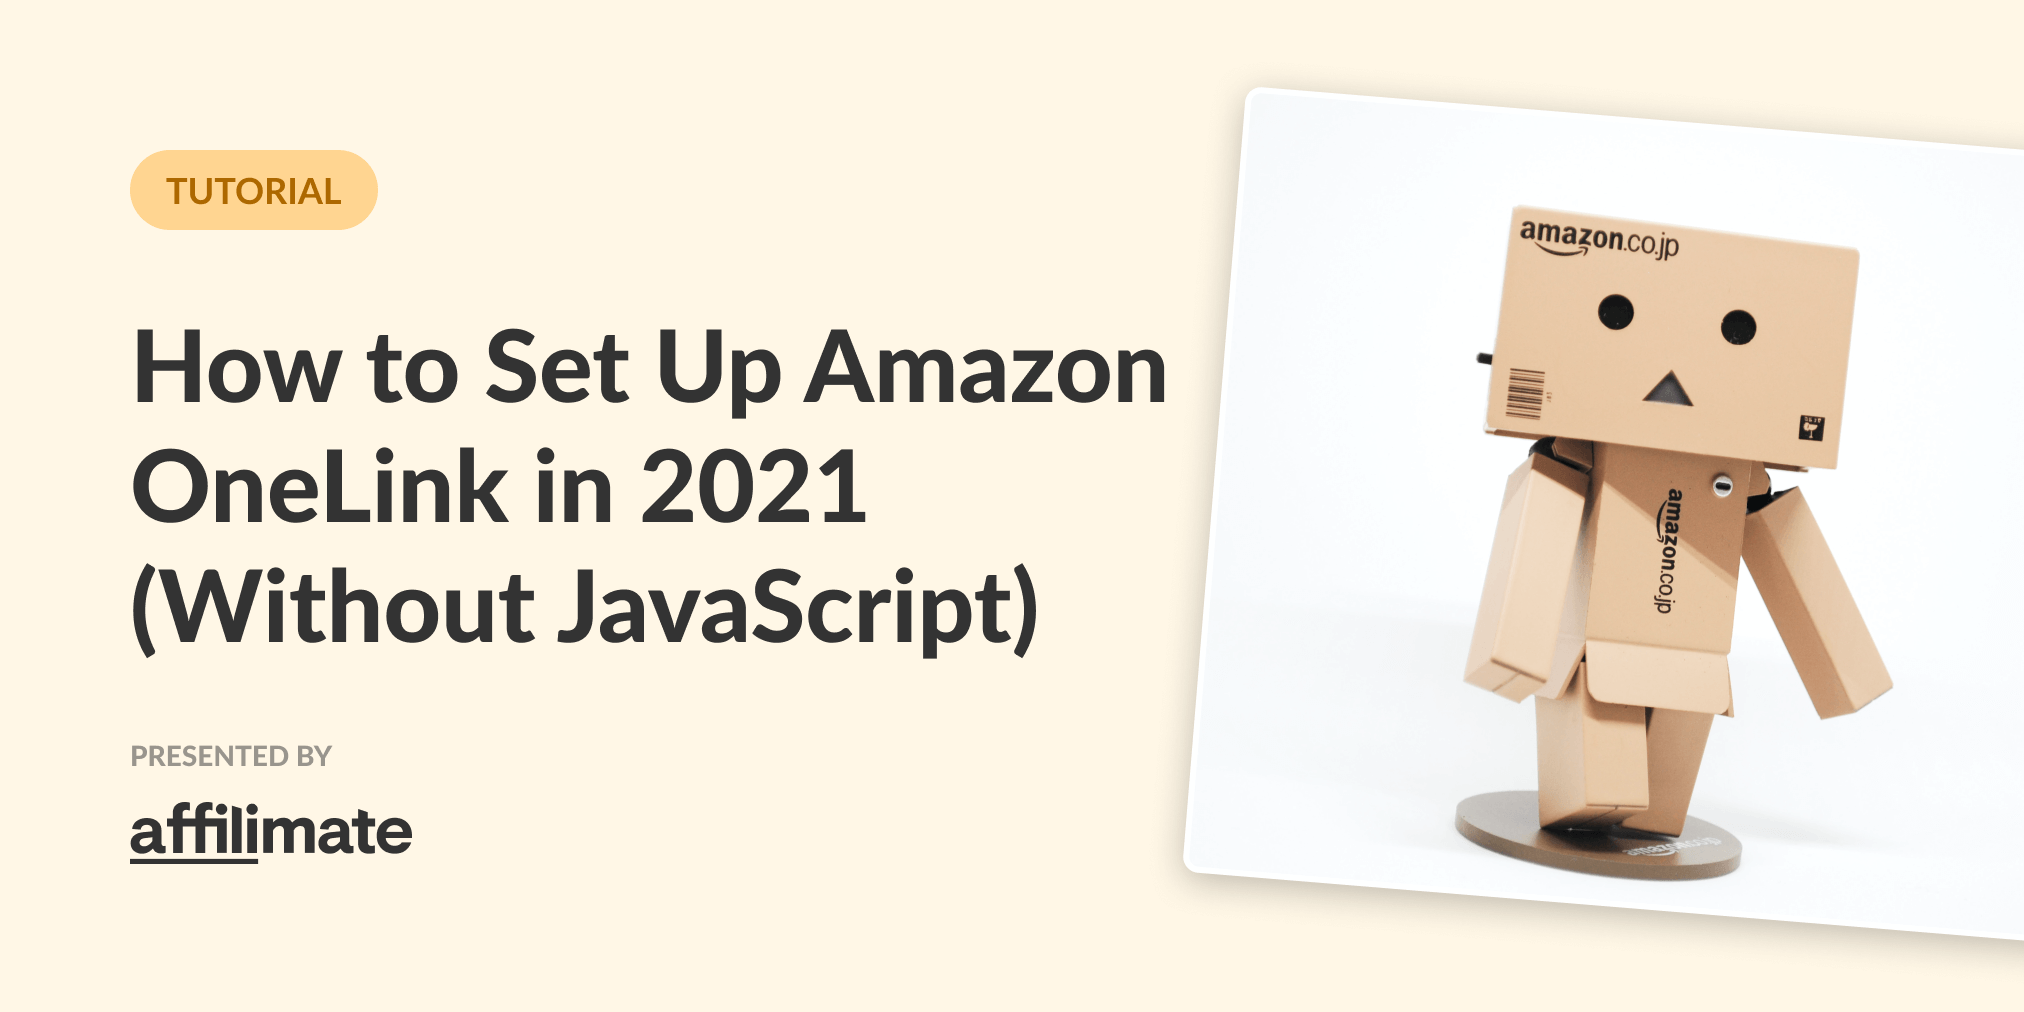 Amazon One Link: How to set up Universal Amazon Links in 2021 (No JavaScript!)